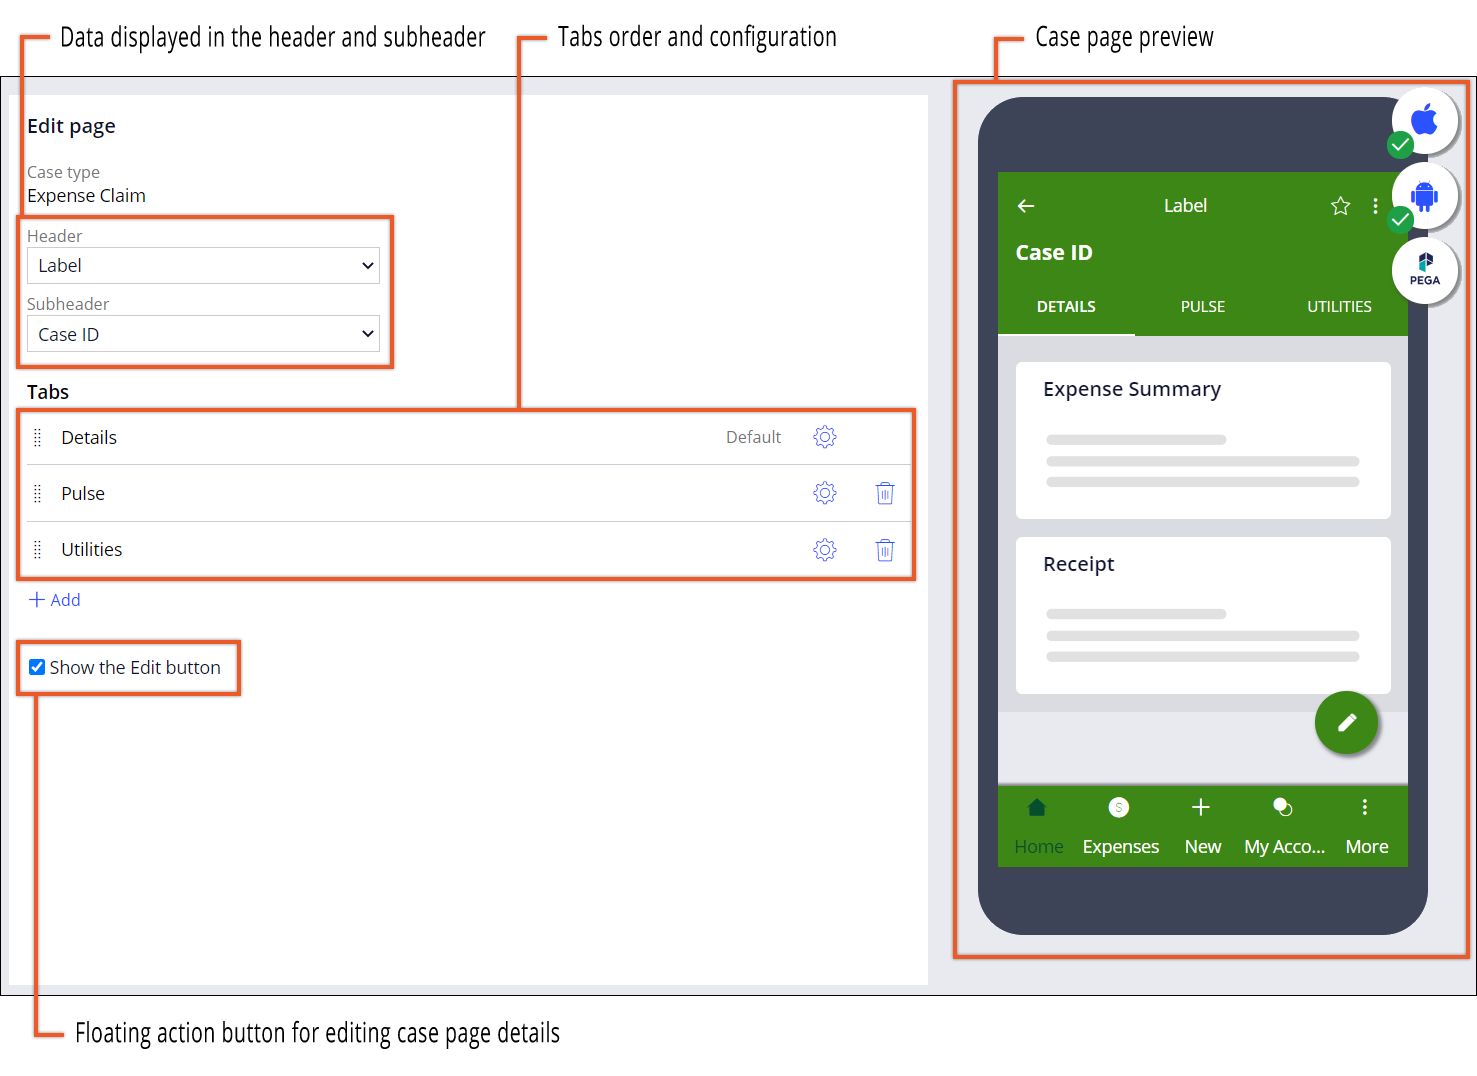 The image shows the low-code mobile channel with configuration                                 settings for an expense report case. The case page contains the                                 following tabs: Details, Activity, and Utilities. On the right, the                                 preview displays the case page with the Details tab that contain an                                 Expense Summary and Receipt views.